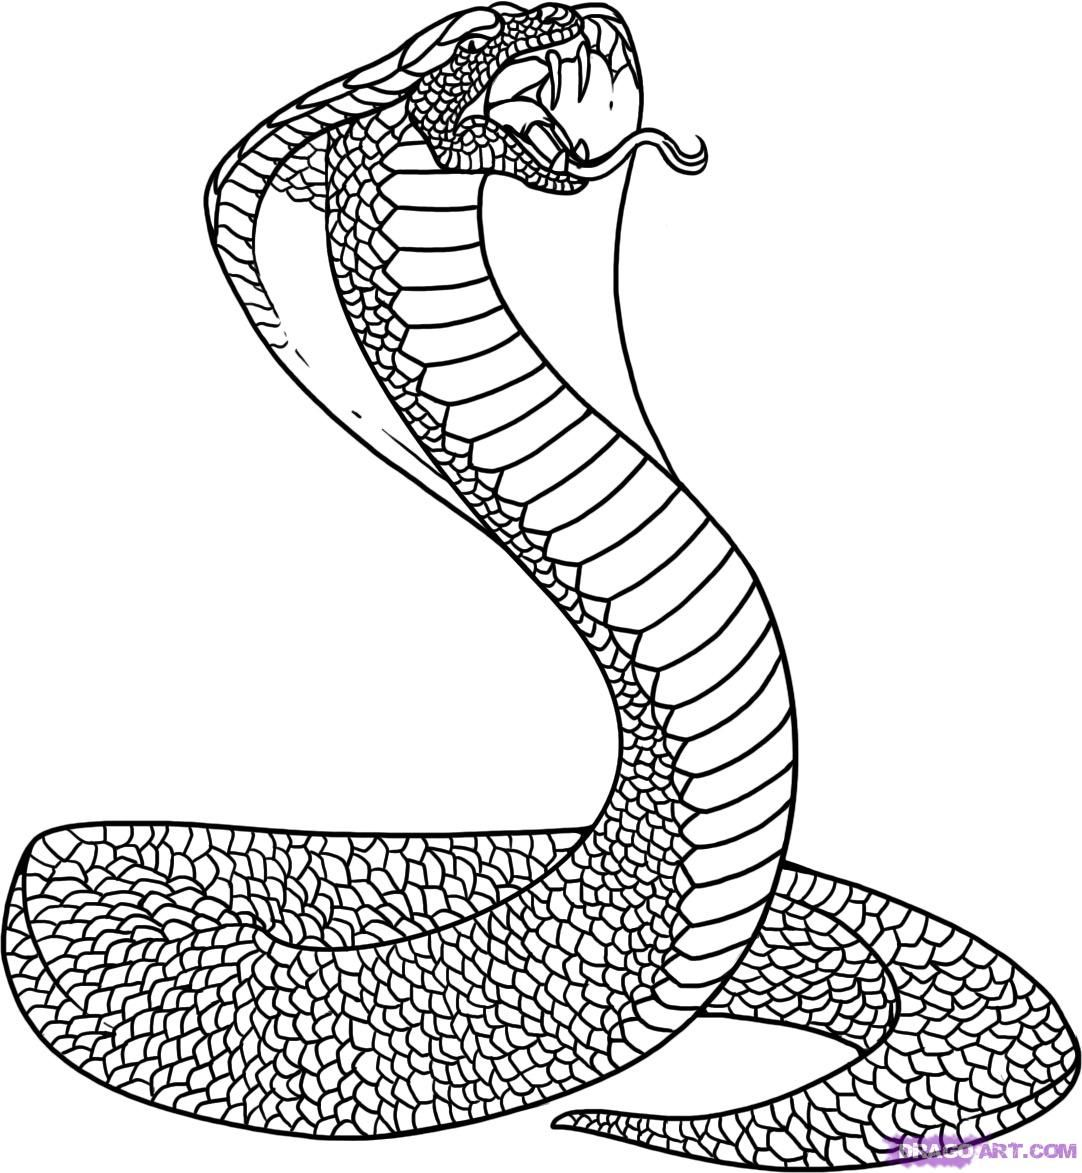 Cobra Coloring Page At Getdrawings Free Download